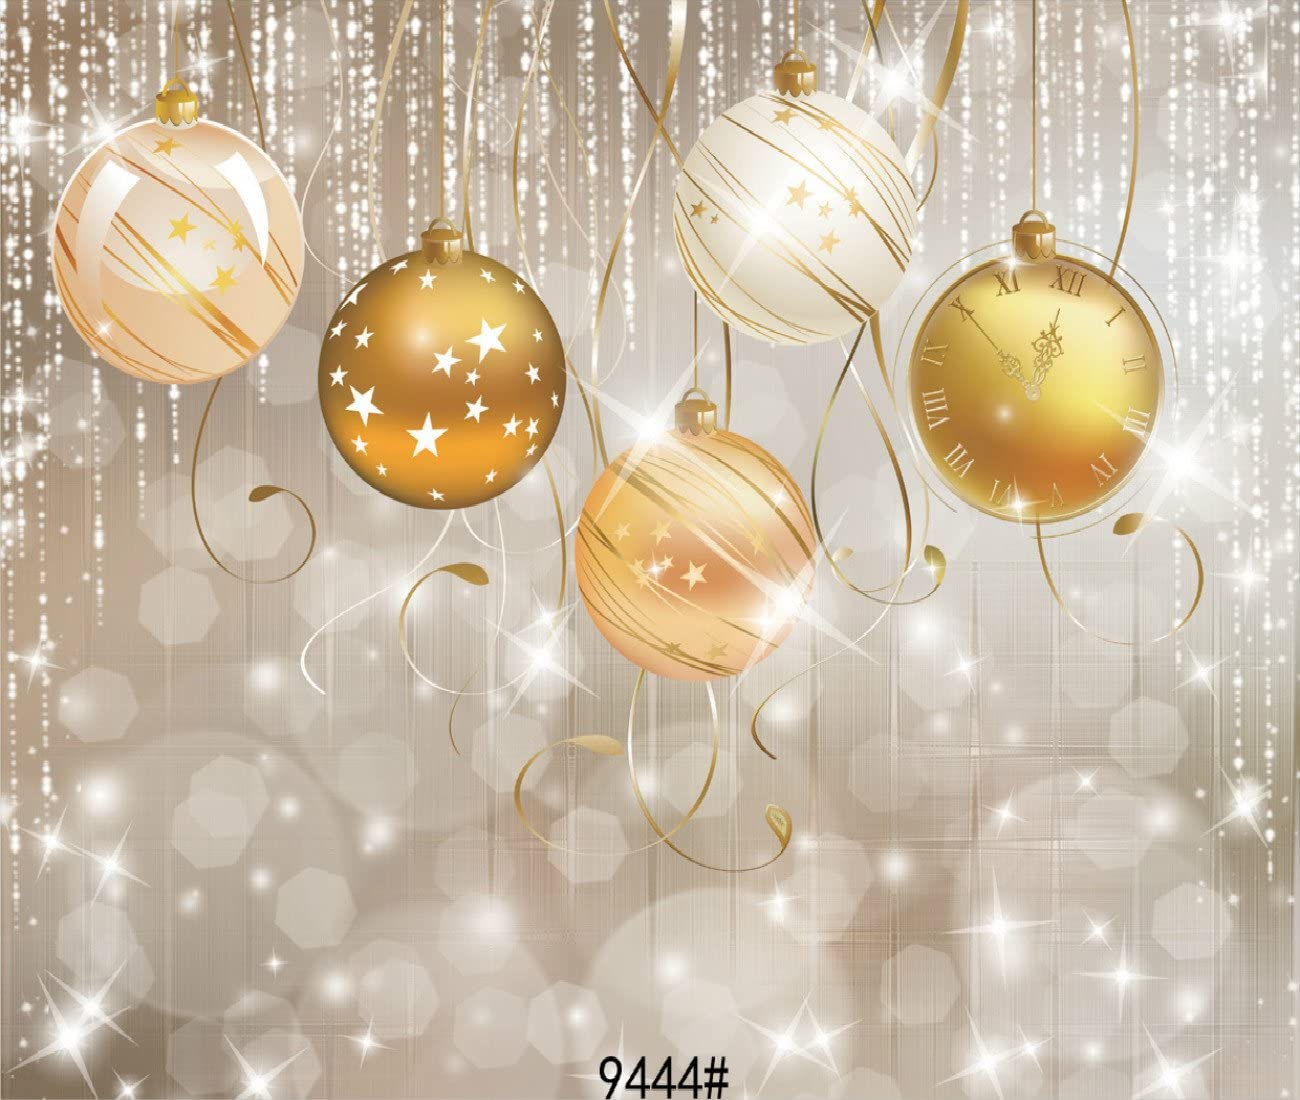 4X3FT-Christmas Lighting Family Party Decoration Photography Backdrops Children Ball Photo Studio Background